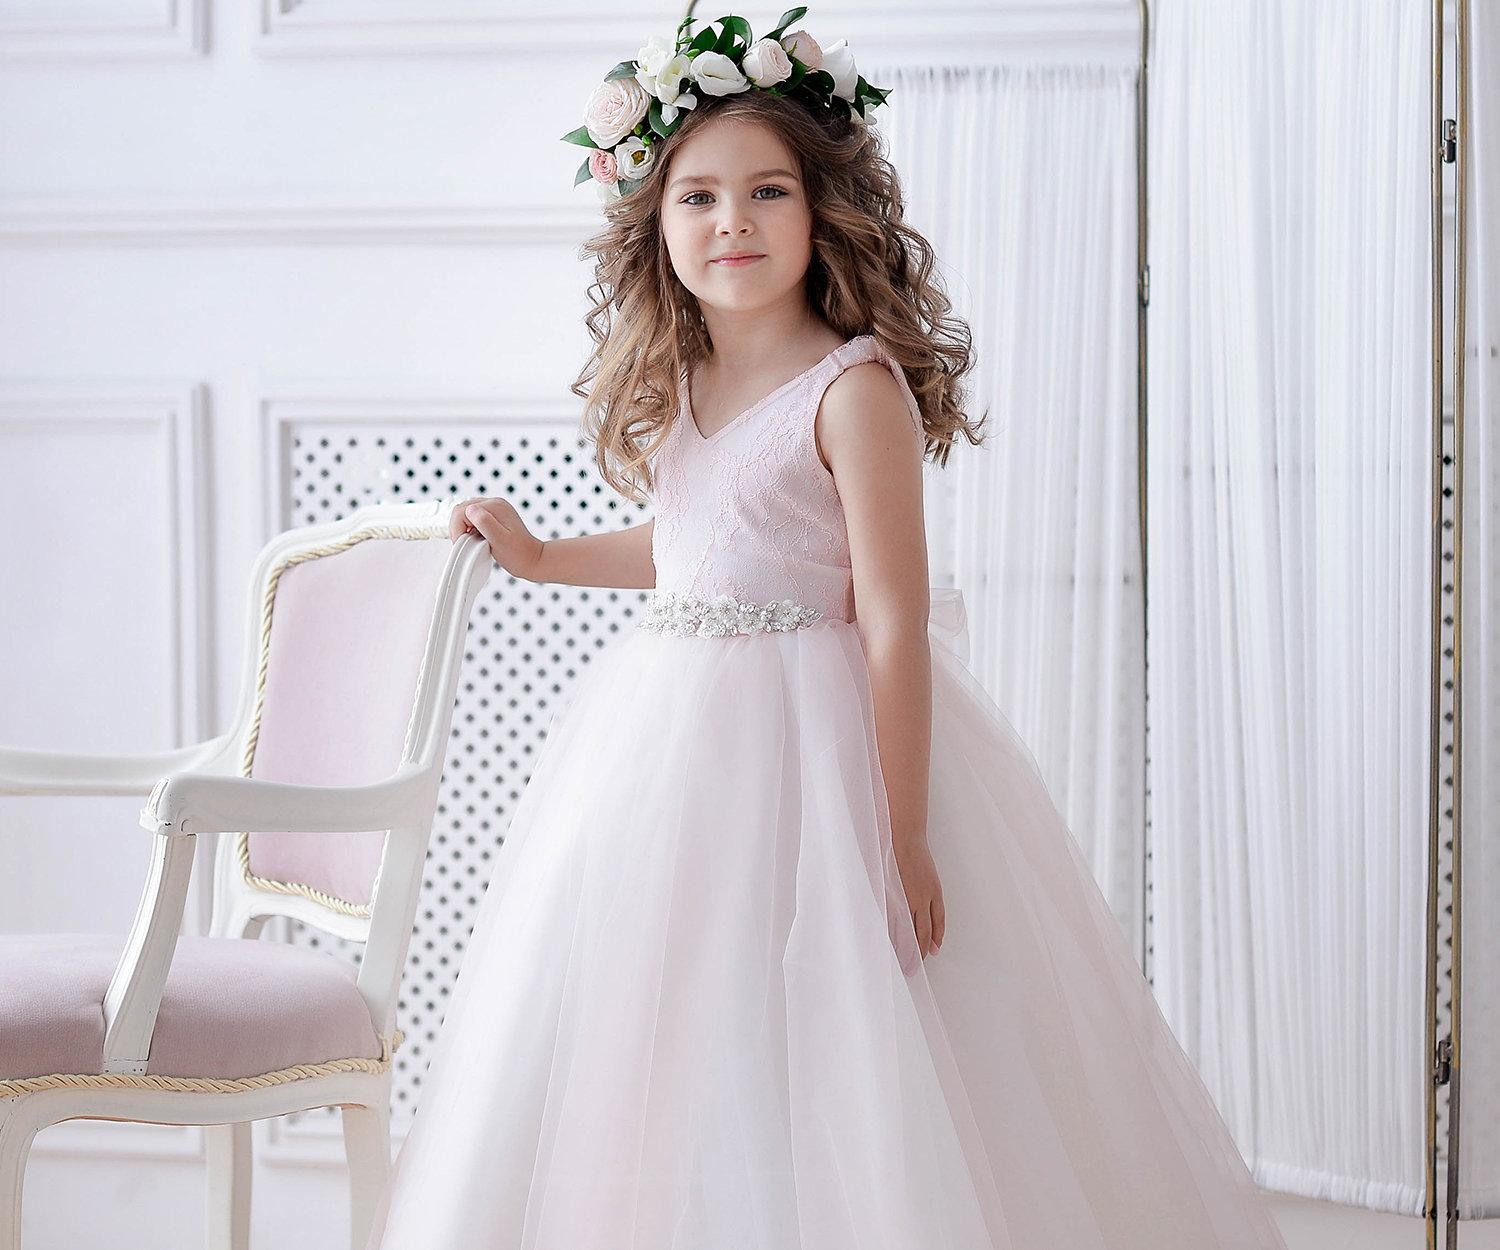 ce3112e9c0ea Blush Flower Girl Dress Tulle Pink Bridesmaid Baby Little Girl Special  Occasion Tutu Wedding Toddler Formal Occasion Party Dresses Baby Wedding  Dresses ...